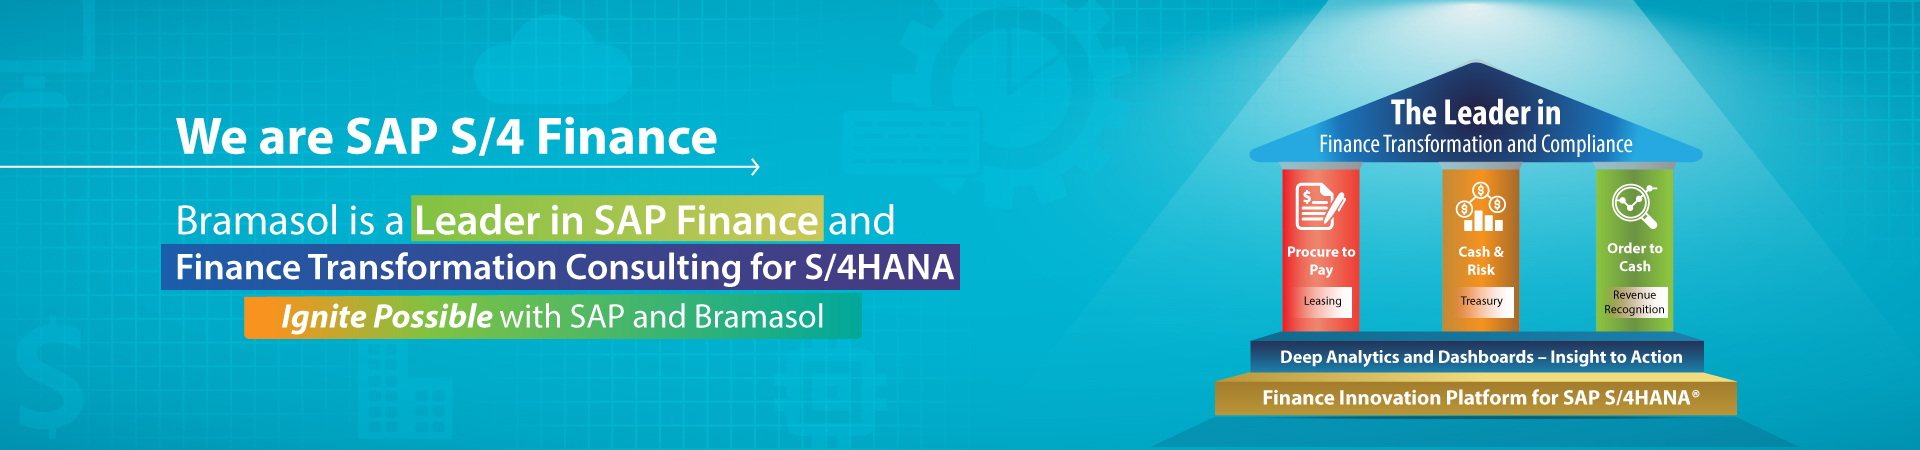 S4HANA Home Page Banner